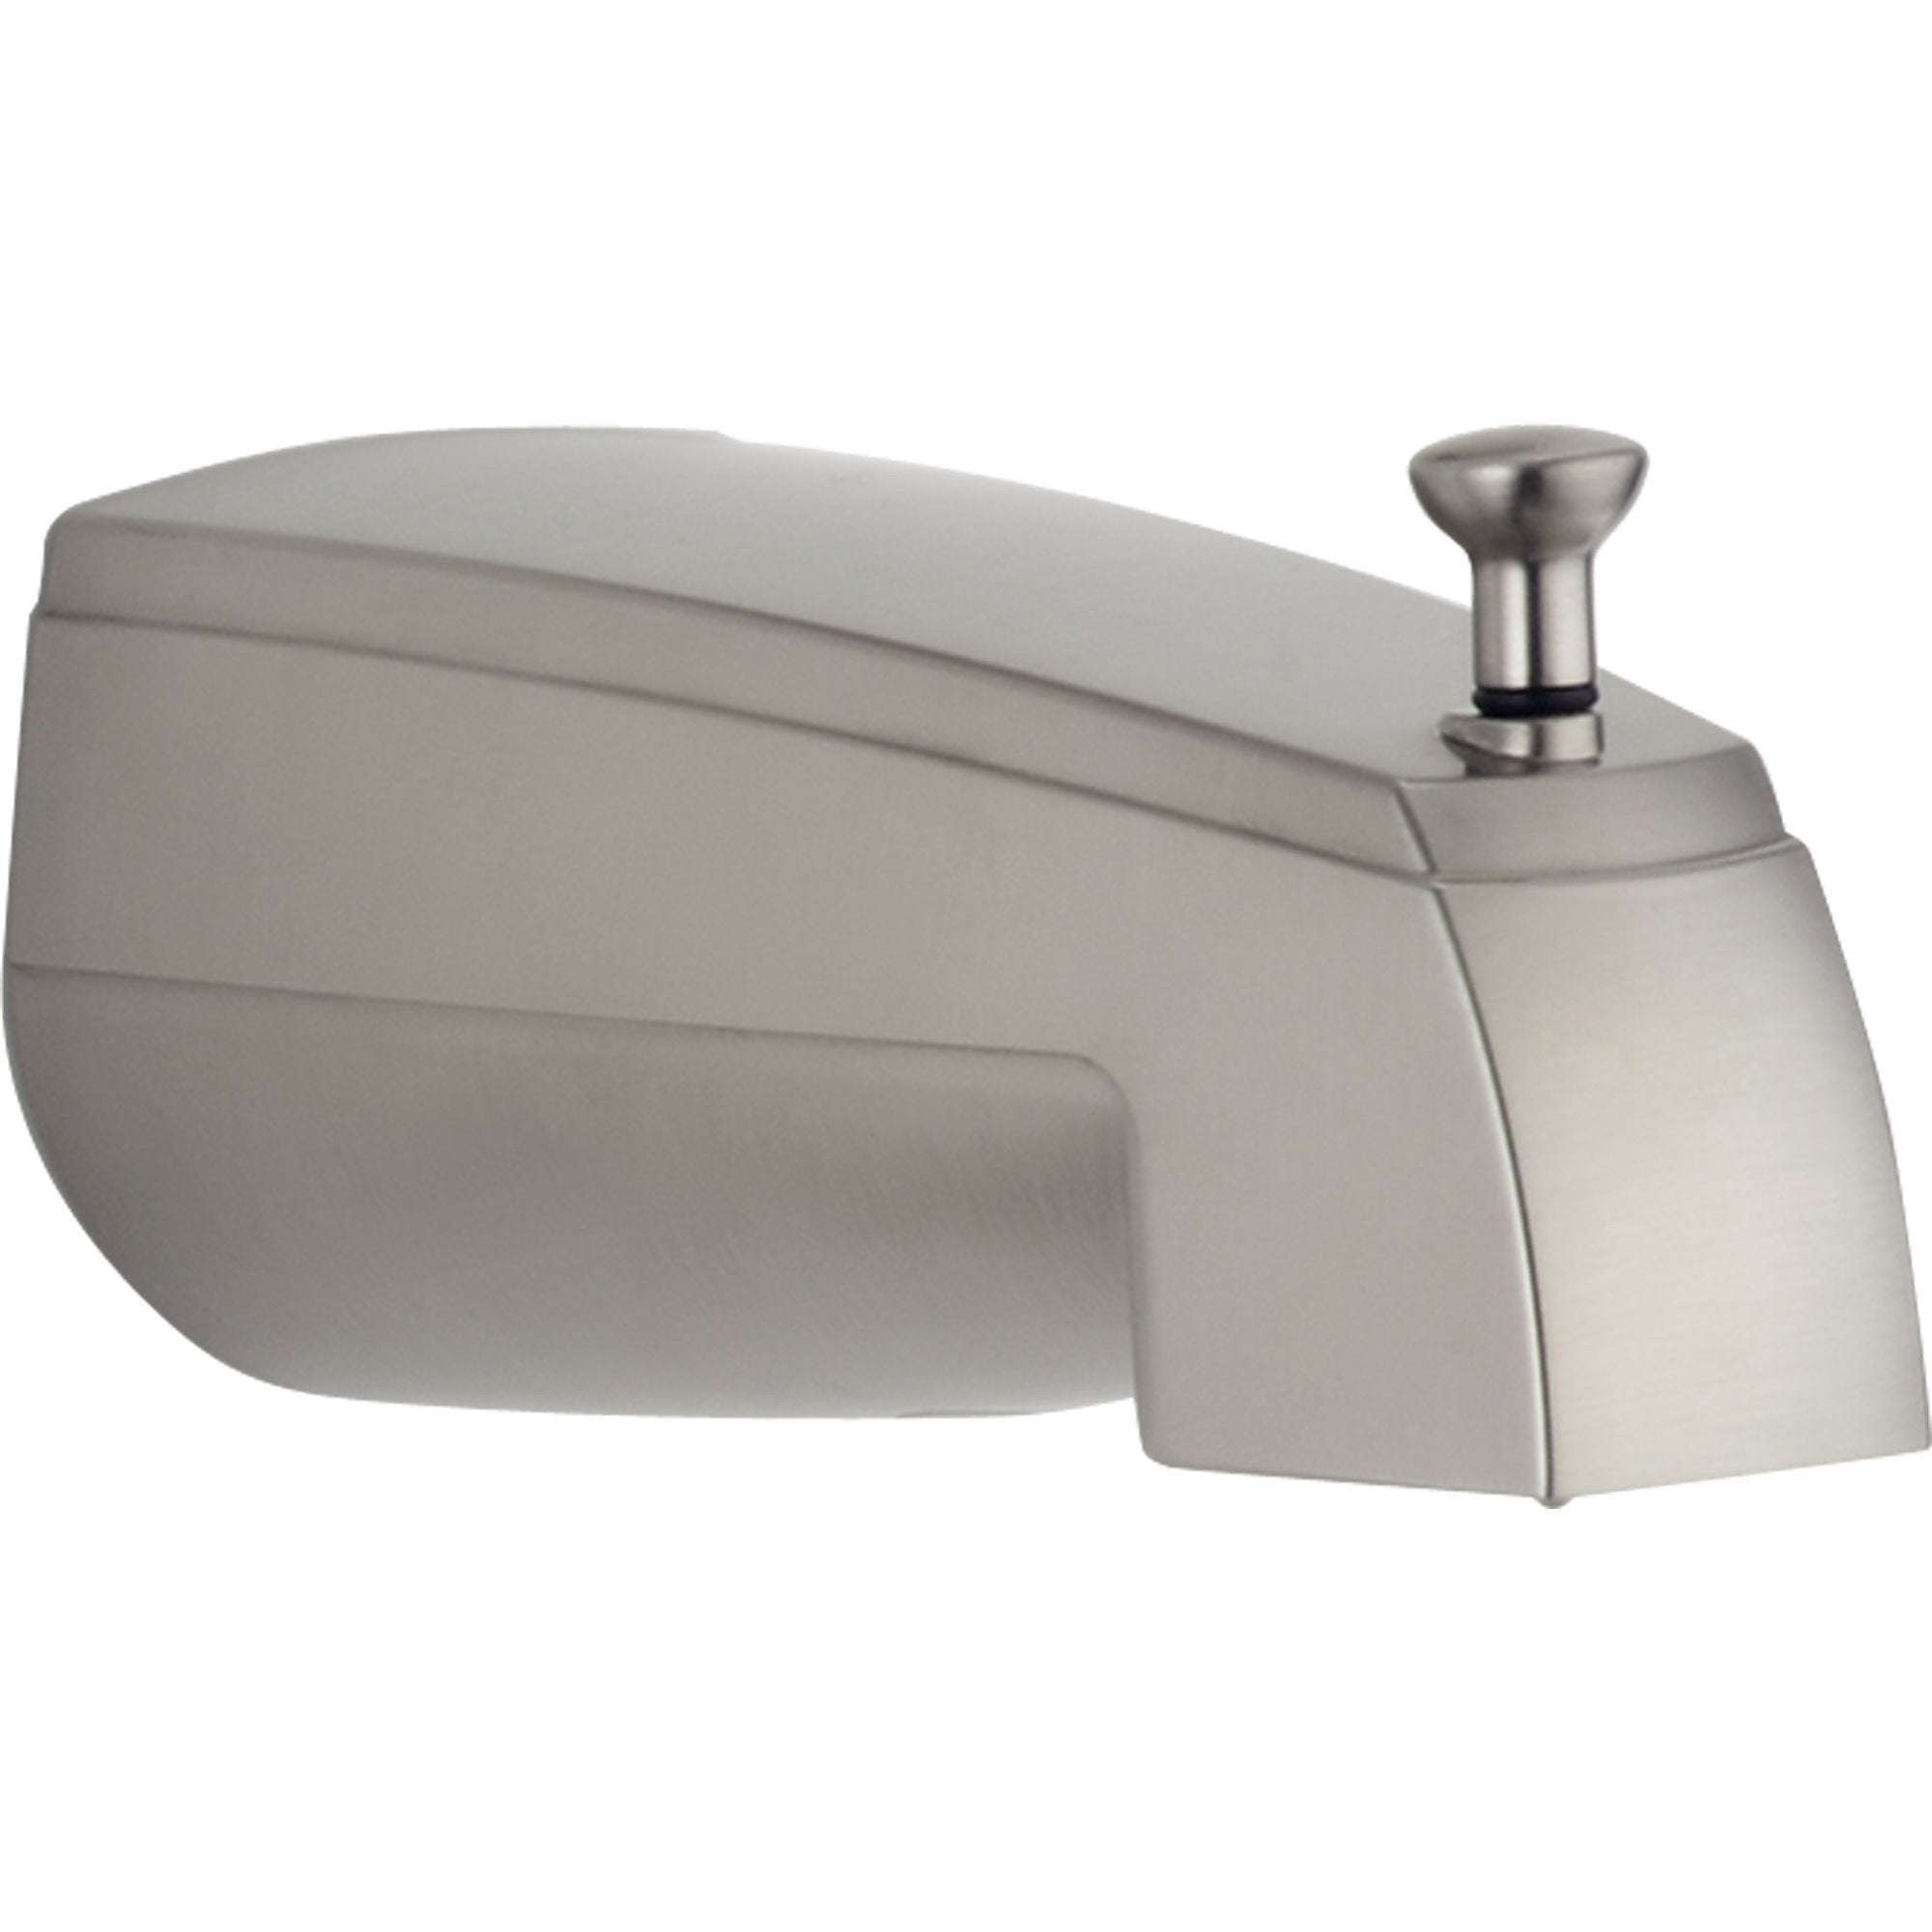 "Delta Stainless Steel Finish 5.5"" Pull-Up Diverter Tub Spout 588660"